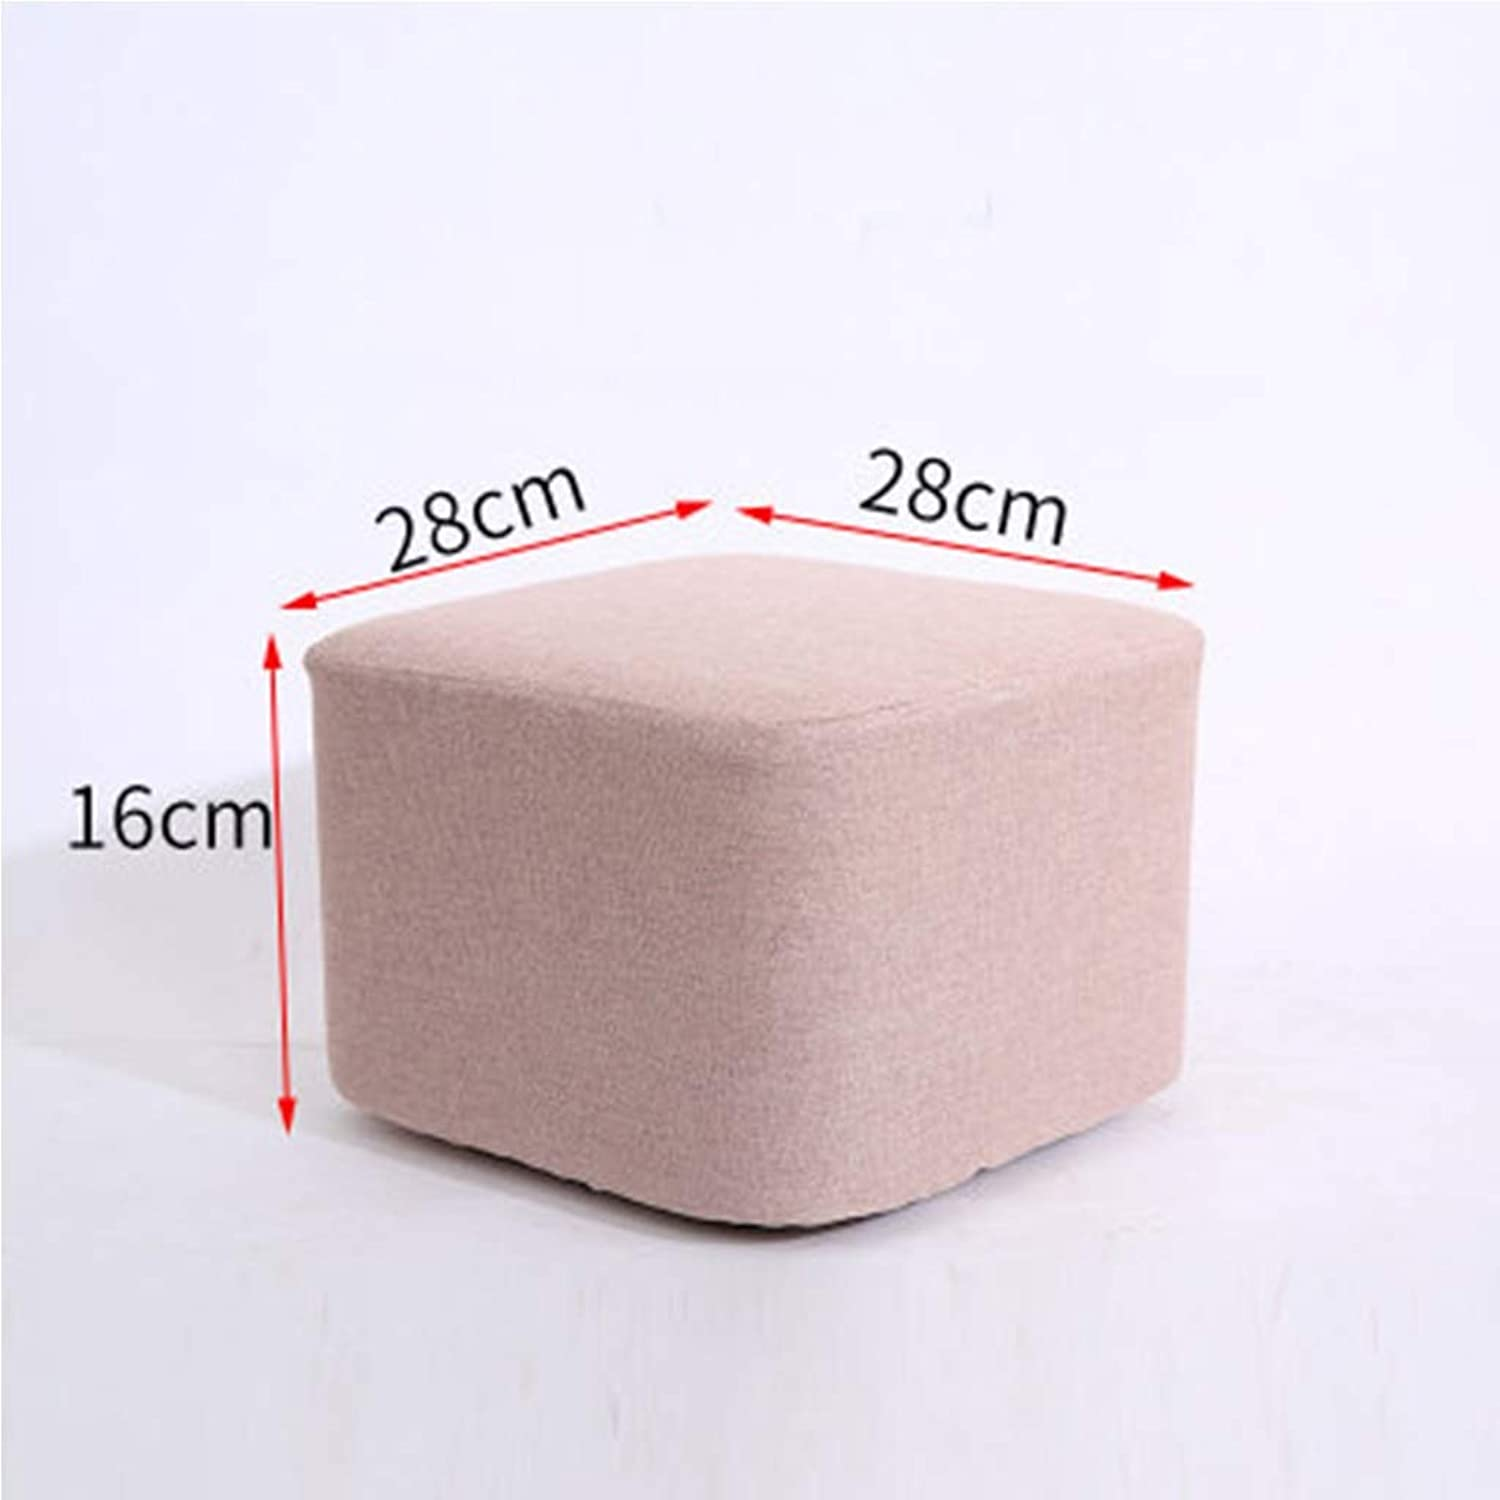 ZHBWJSH Solid Wood Fabric Change shoes Stool Fashion Stool Creative Sofa Bench Coffee Table Stool Pier Stool Home Small Bench Footrest (color   B)